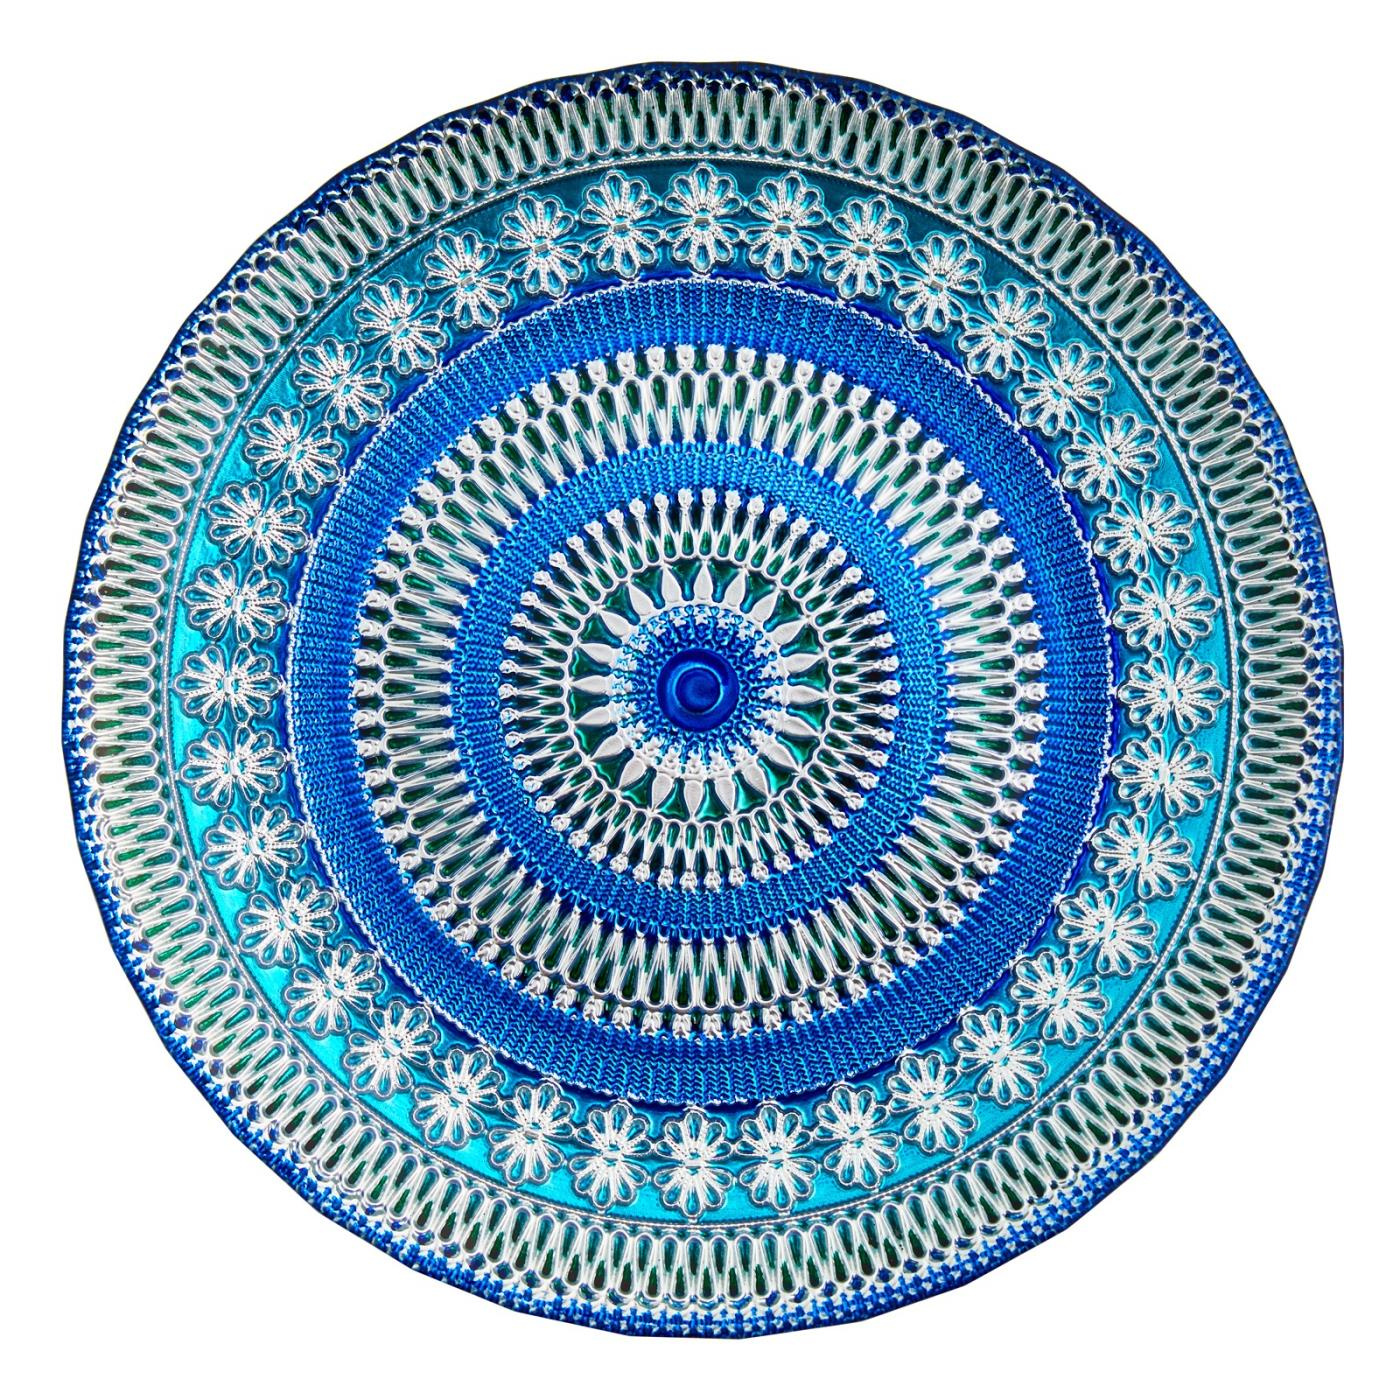 Blue Moore Glass Charger - Dinner Plate 10.75""